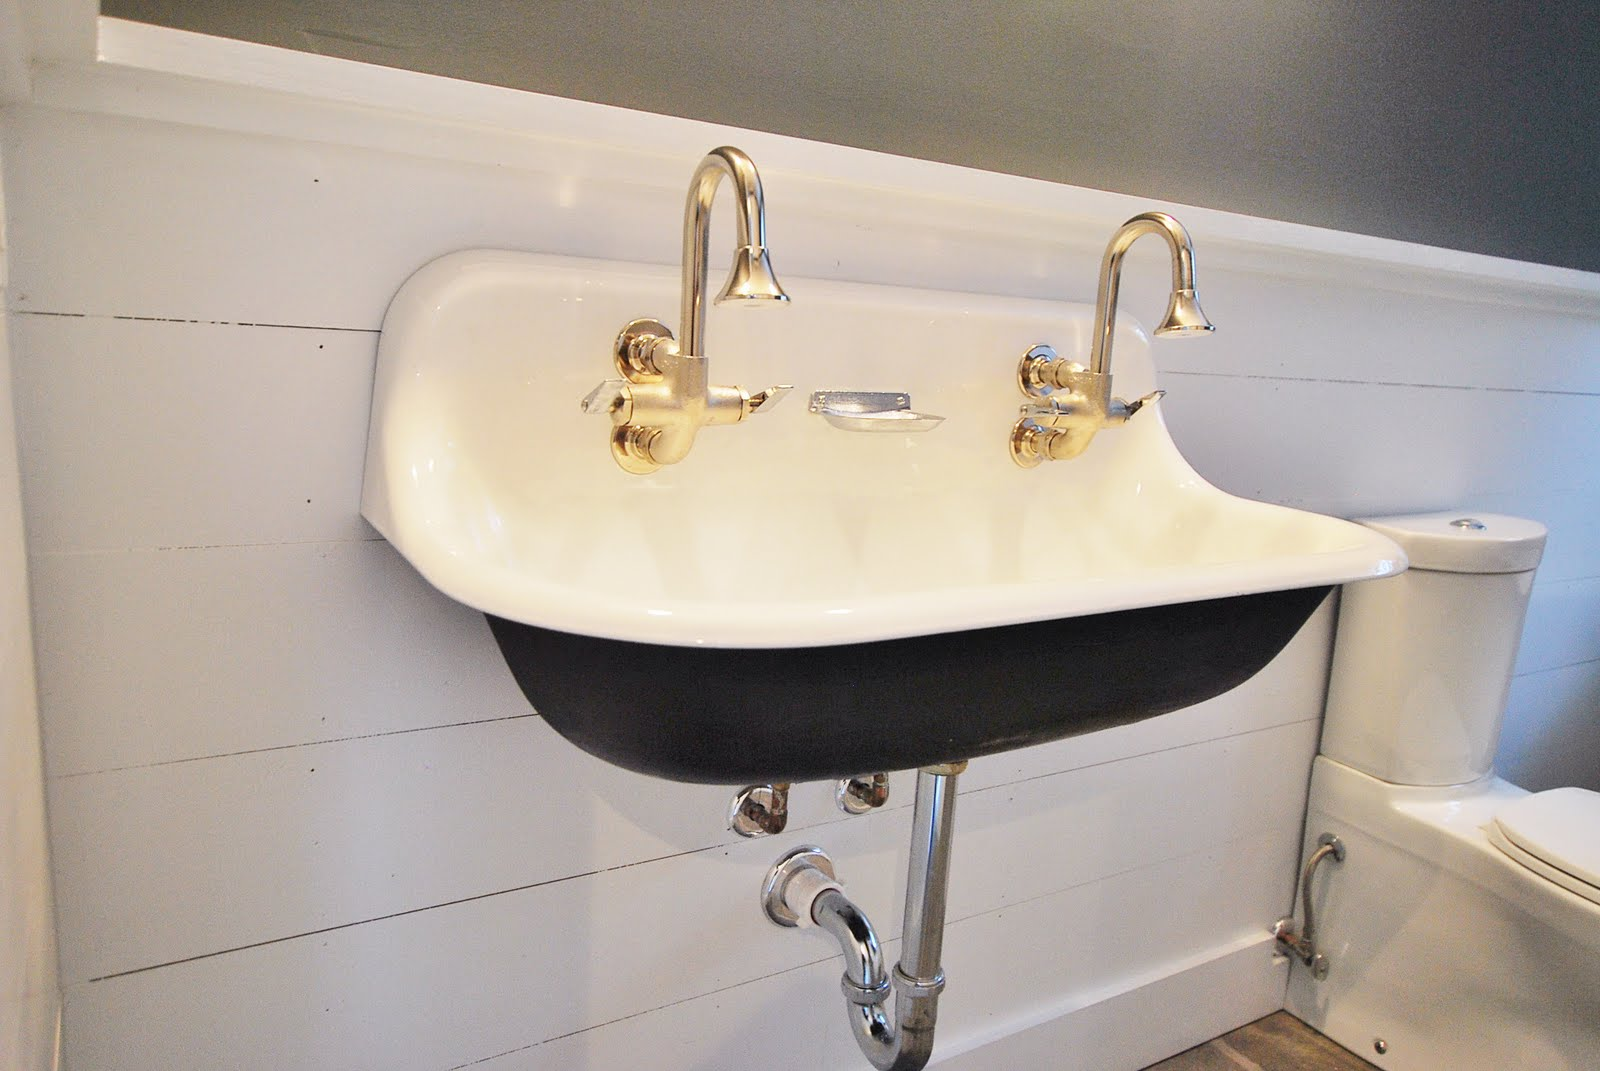 Charming kohler sinks with double golden faucet for bathroom ideas